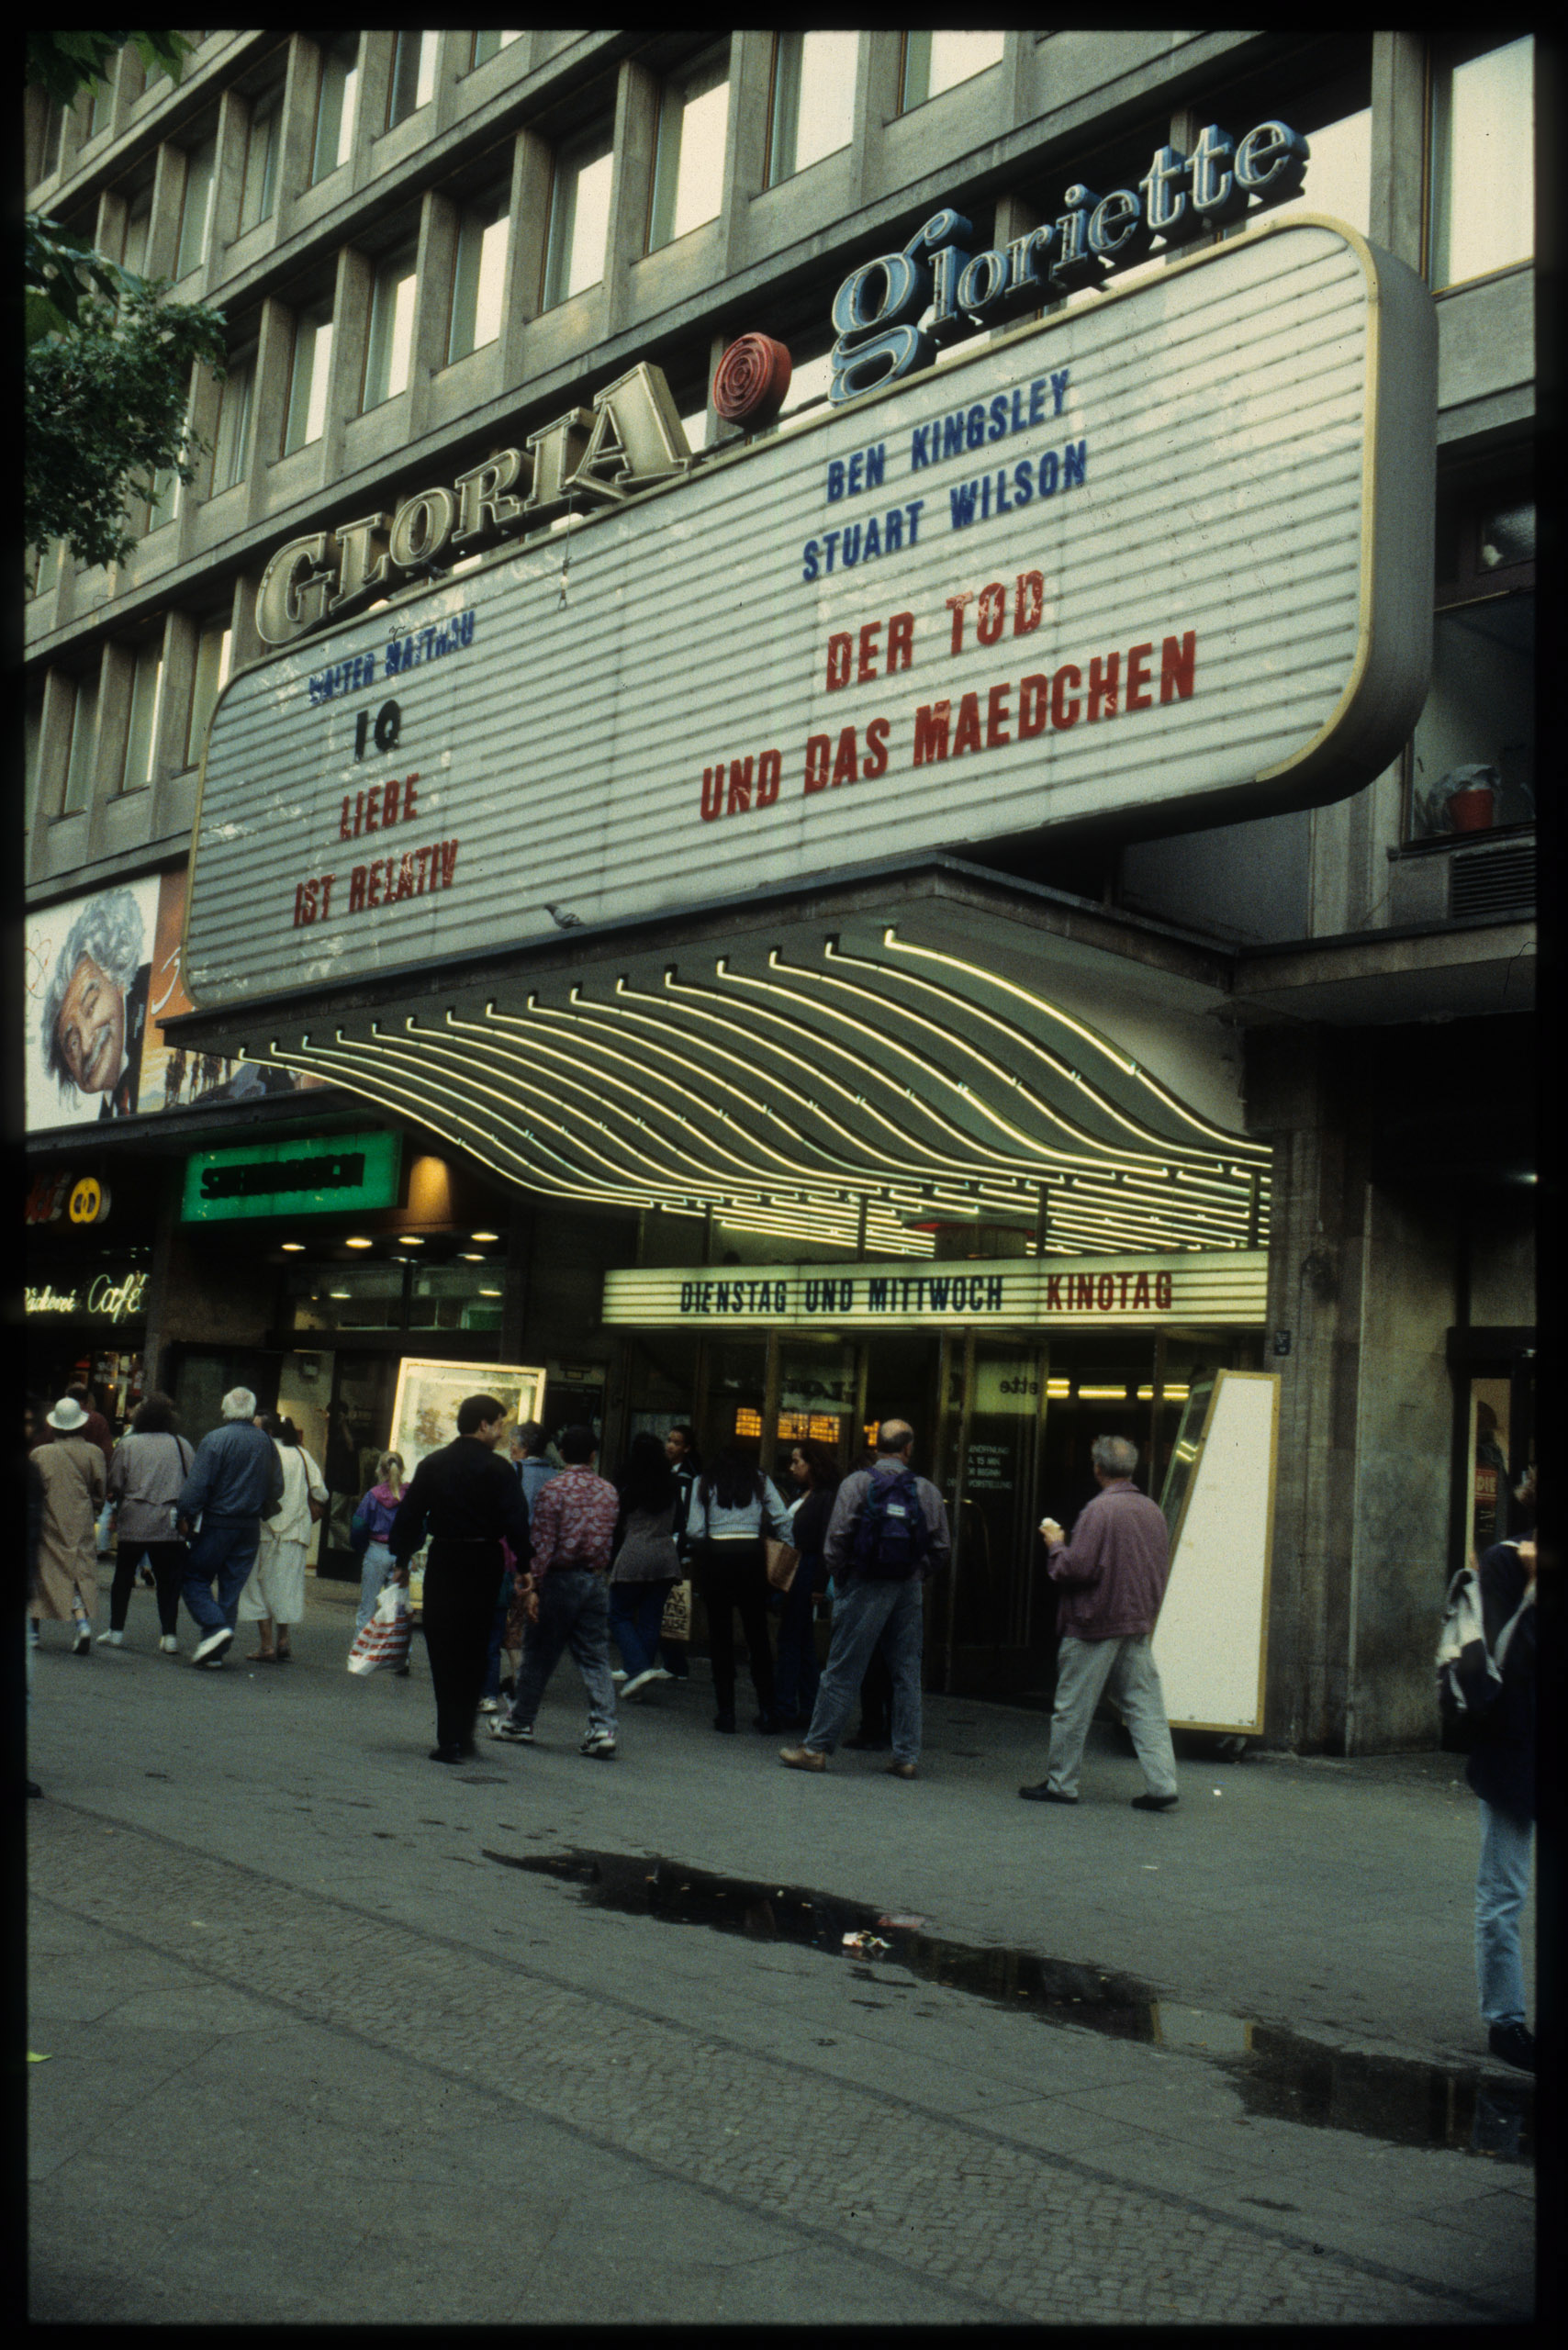 Color photo: passersby in front of the entrance with illuminated advertisements and display panel